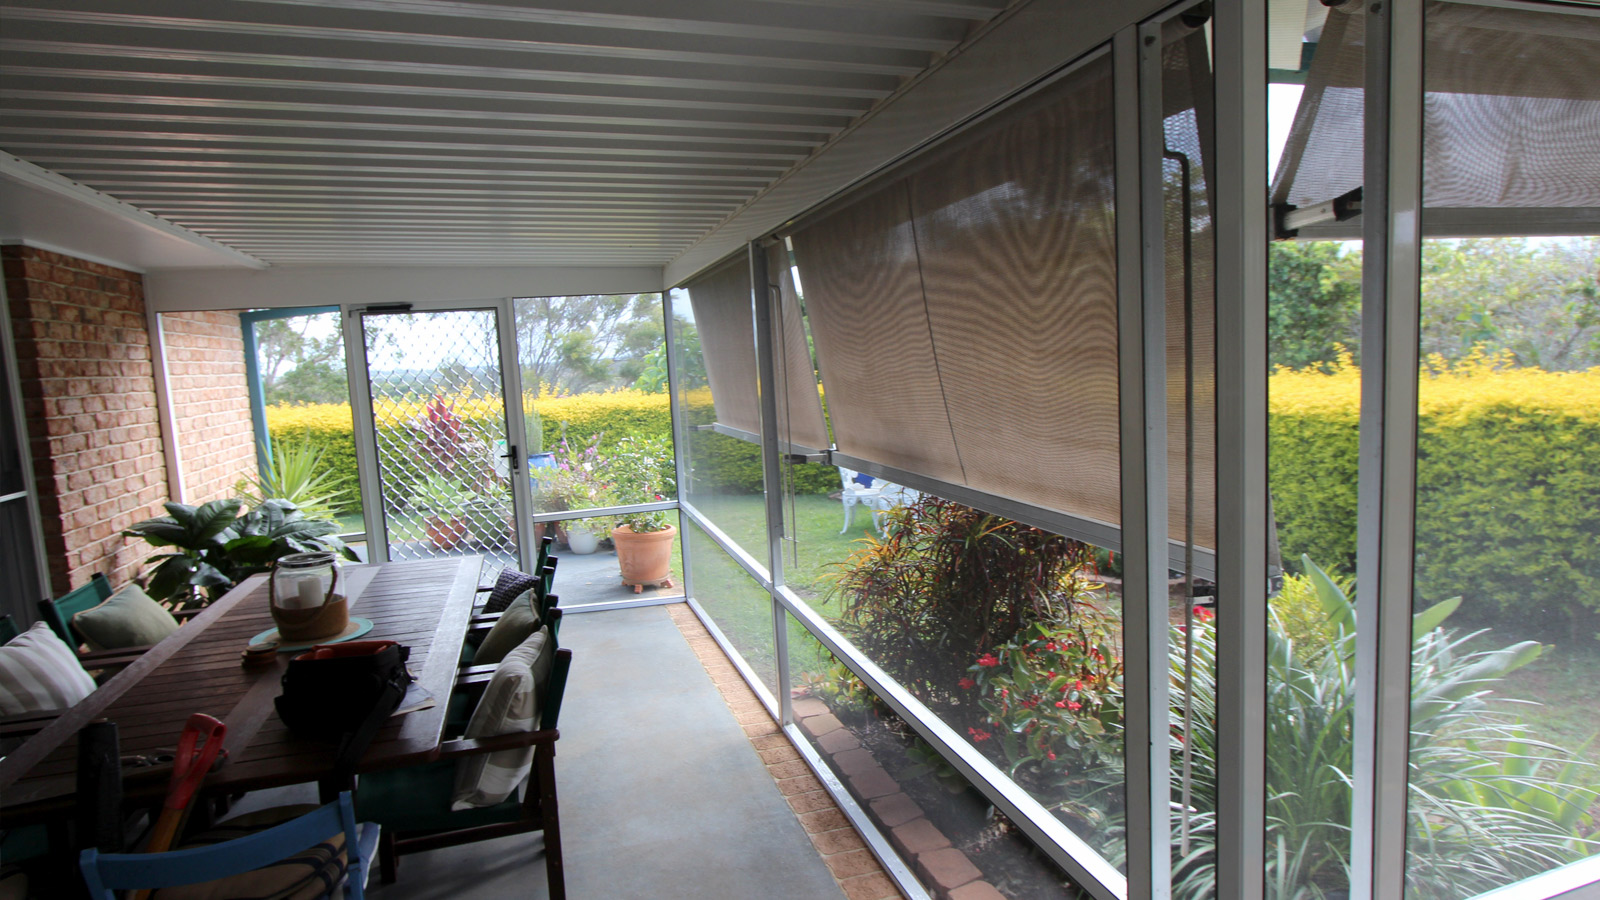 Insect Proofing An Outdoor Bbq Area With Screens Atlas